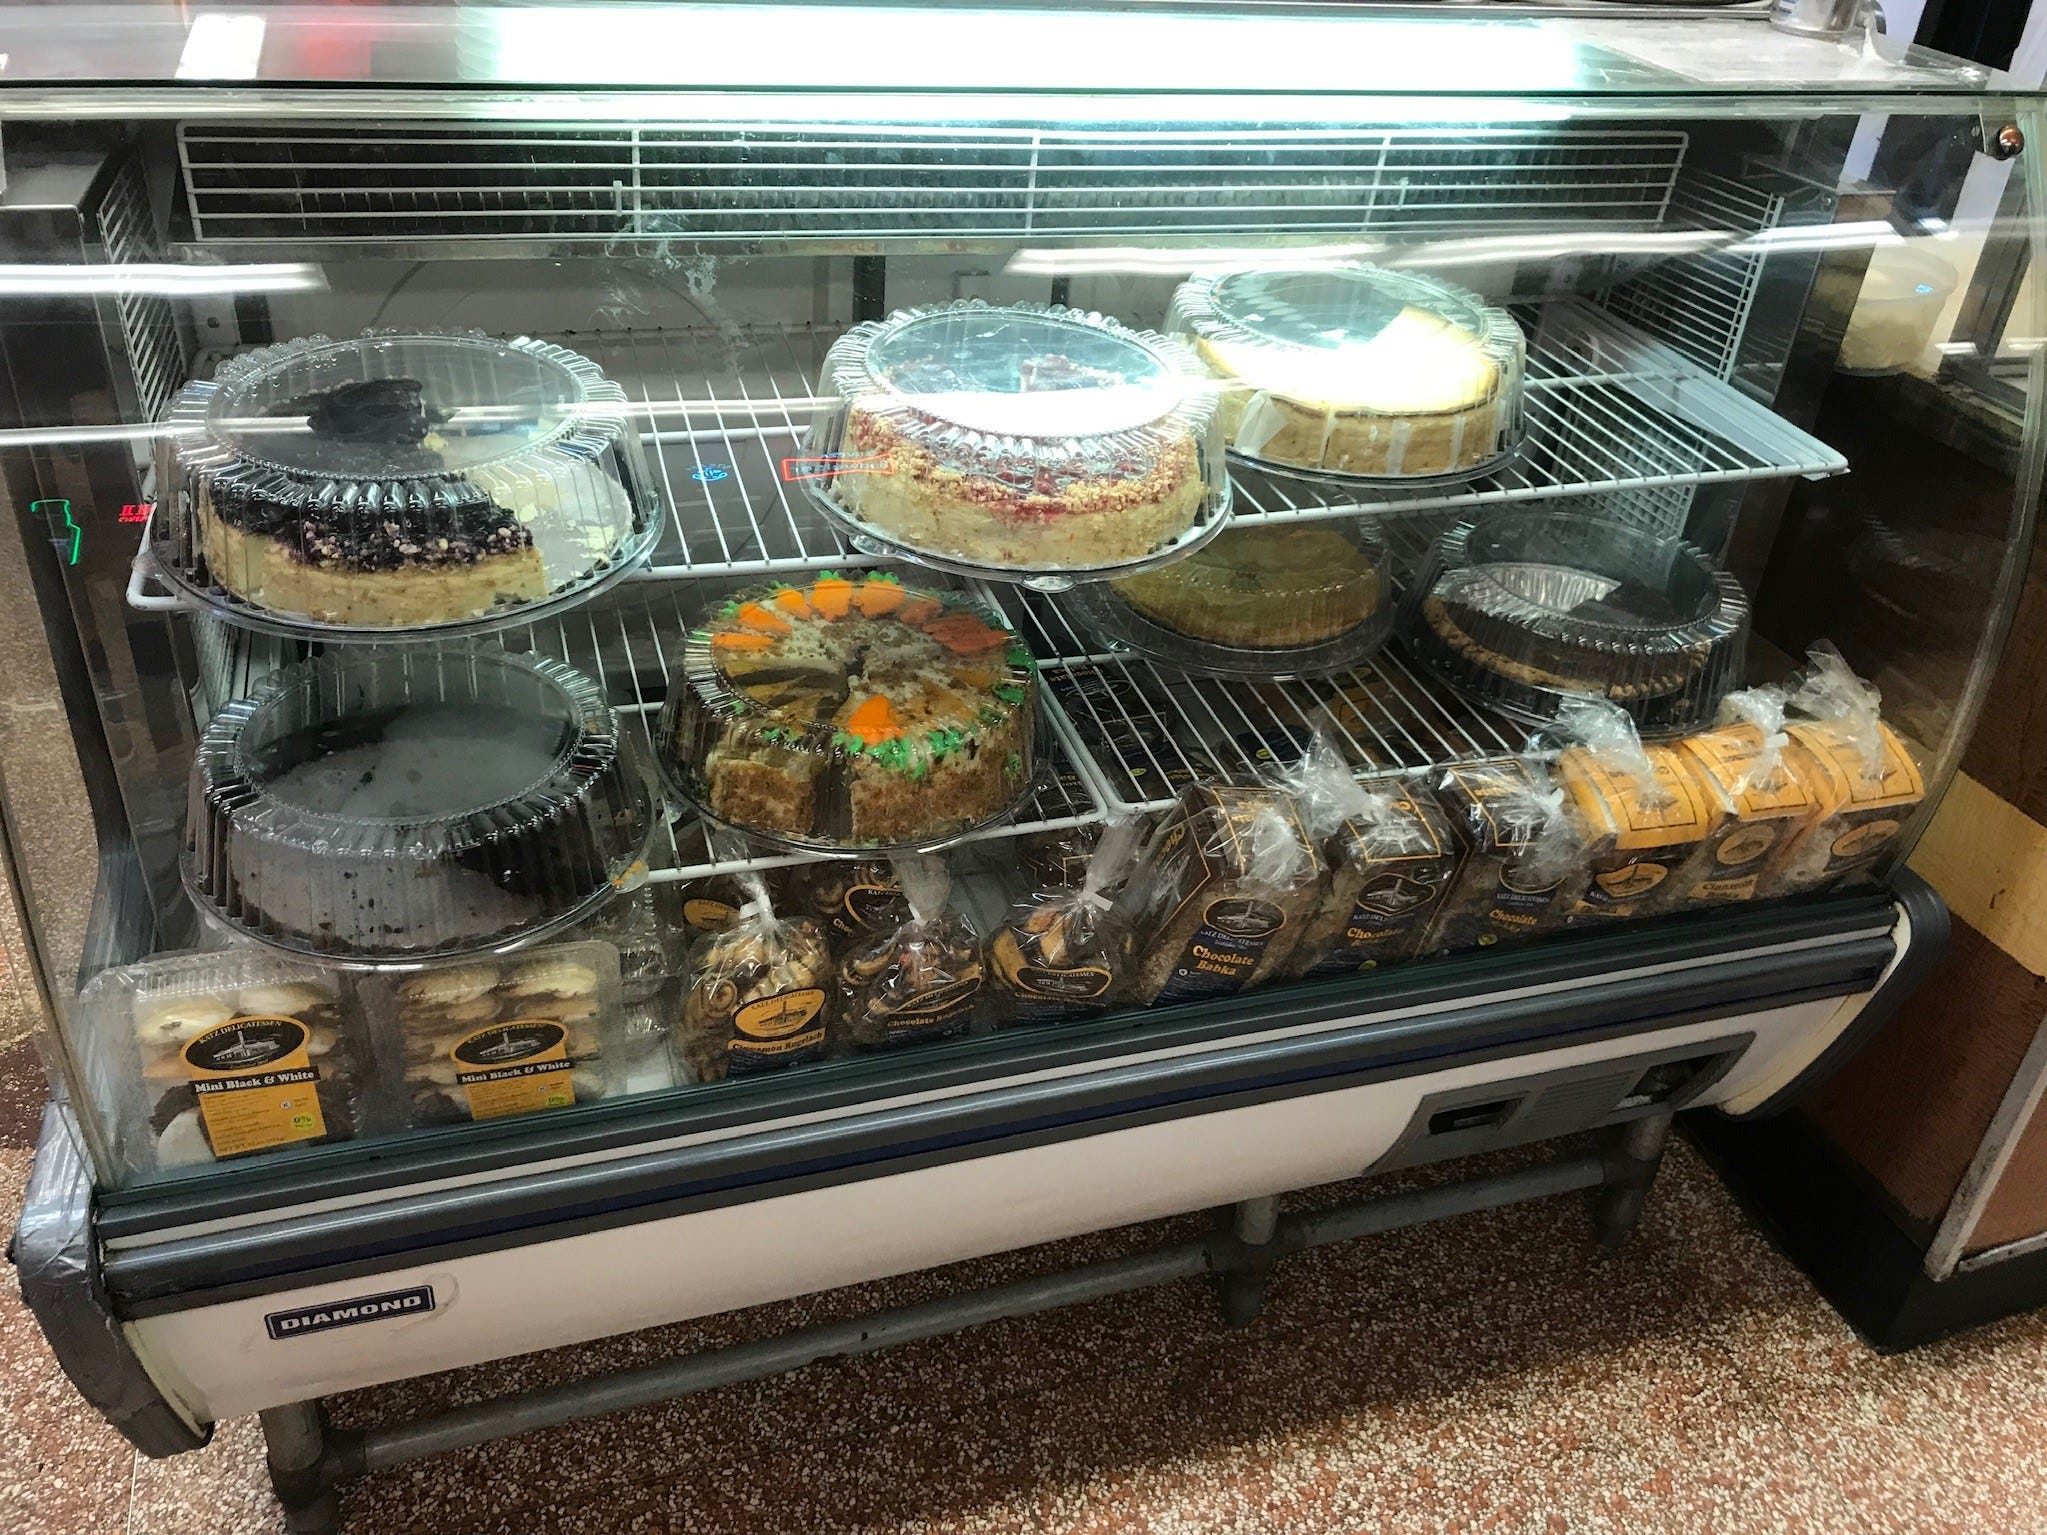 The dessert cooler, with a selection of cheesecake, carrot cake, other pastries and Katz's famous babkas.